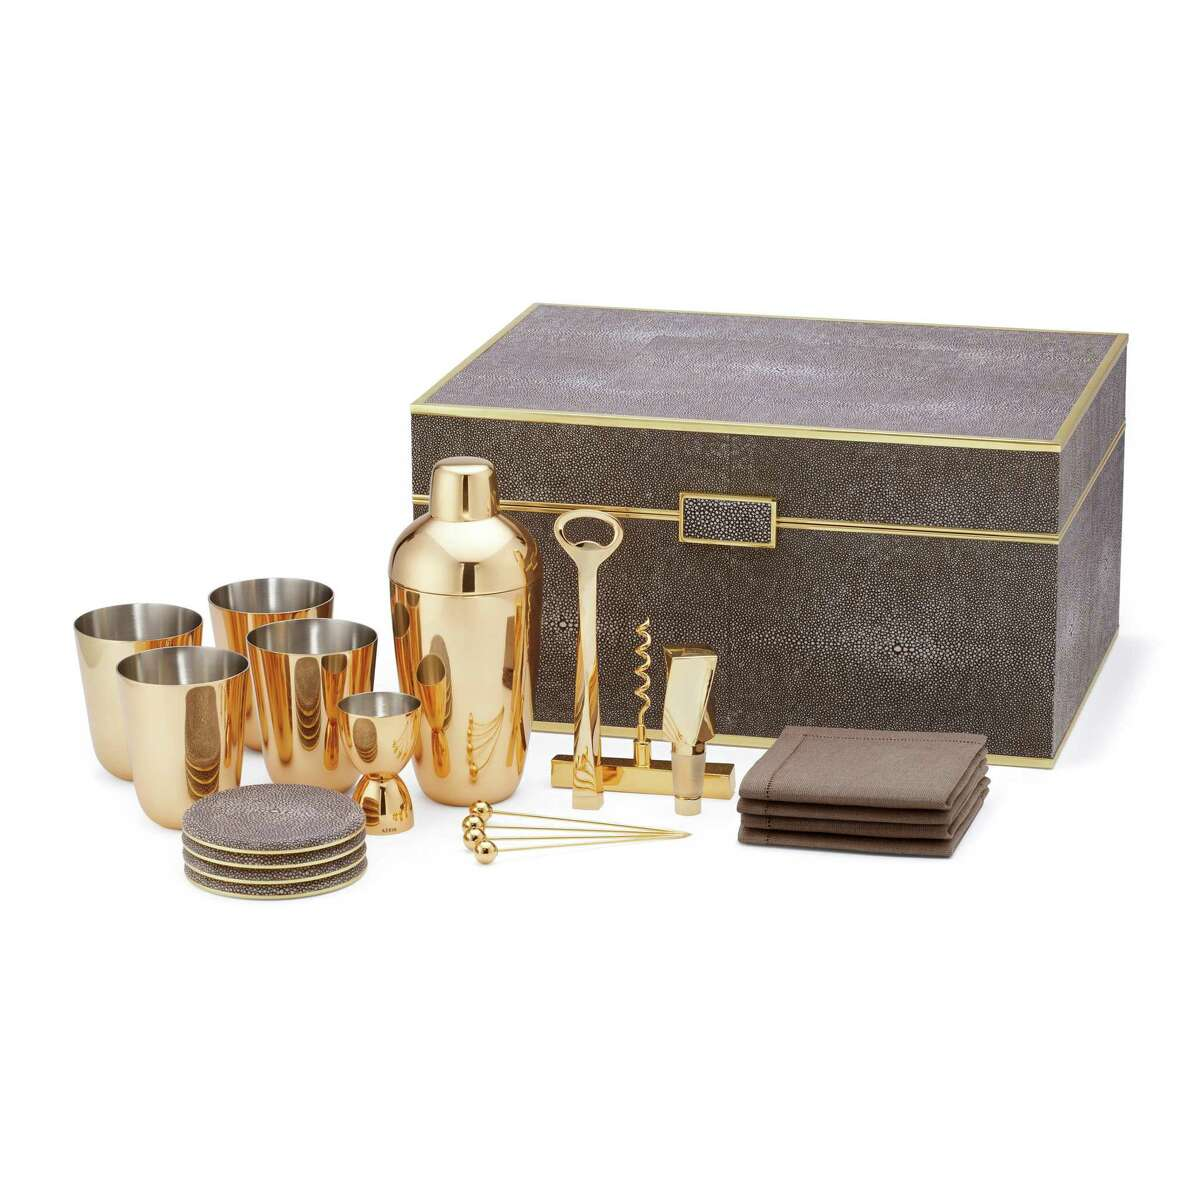 Brass, suede and shagreen combine for the ultimate bar collection for any mixologist. The set - by Aerin and in cream or chocolate finish - includes three removable trays, bar tools, a jigger, shaker set, cocktail picks, julep cups, napkins and shagreen coasters, all in a shagreen covered box. $5,371; amara.com